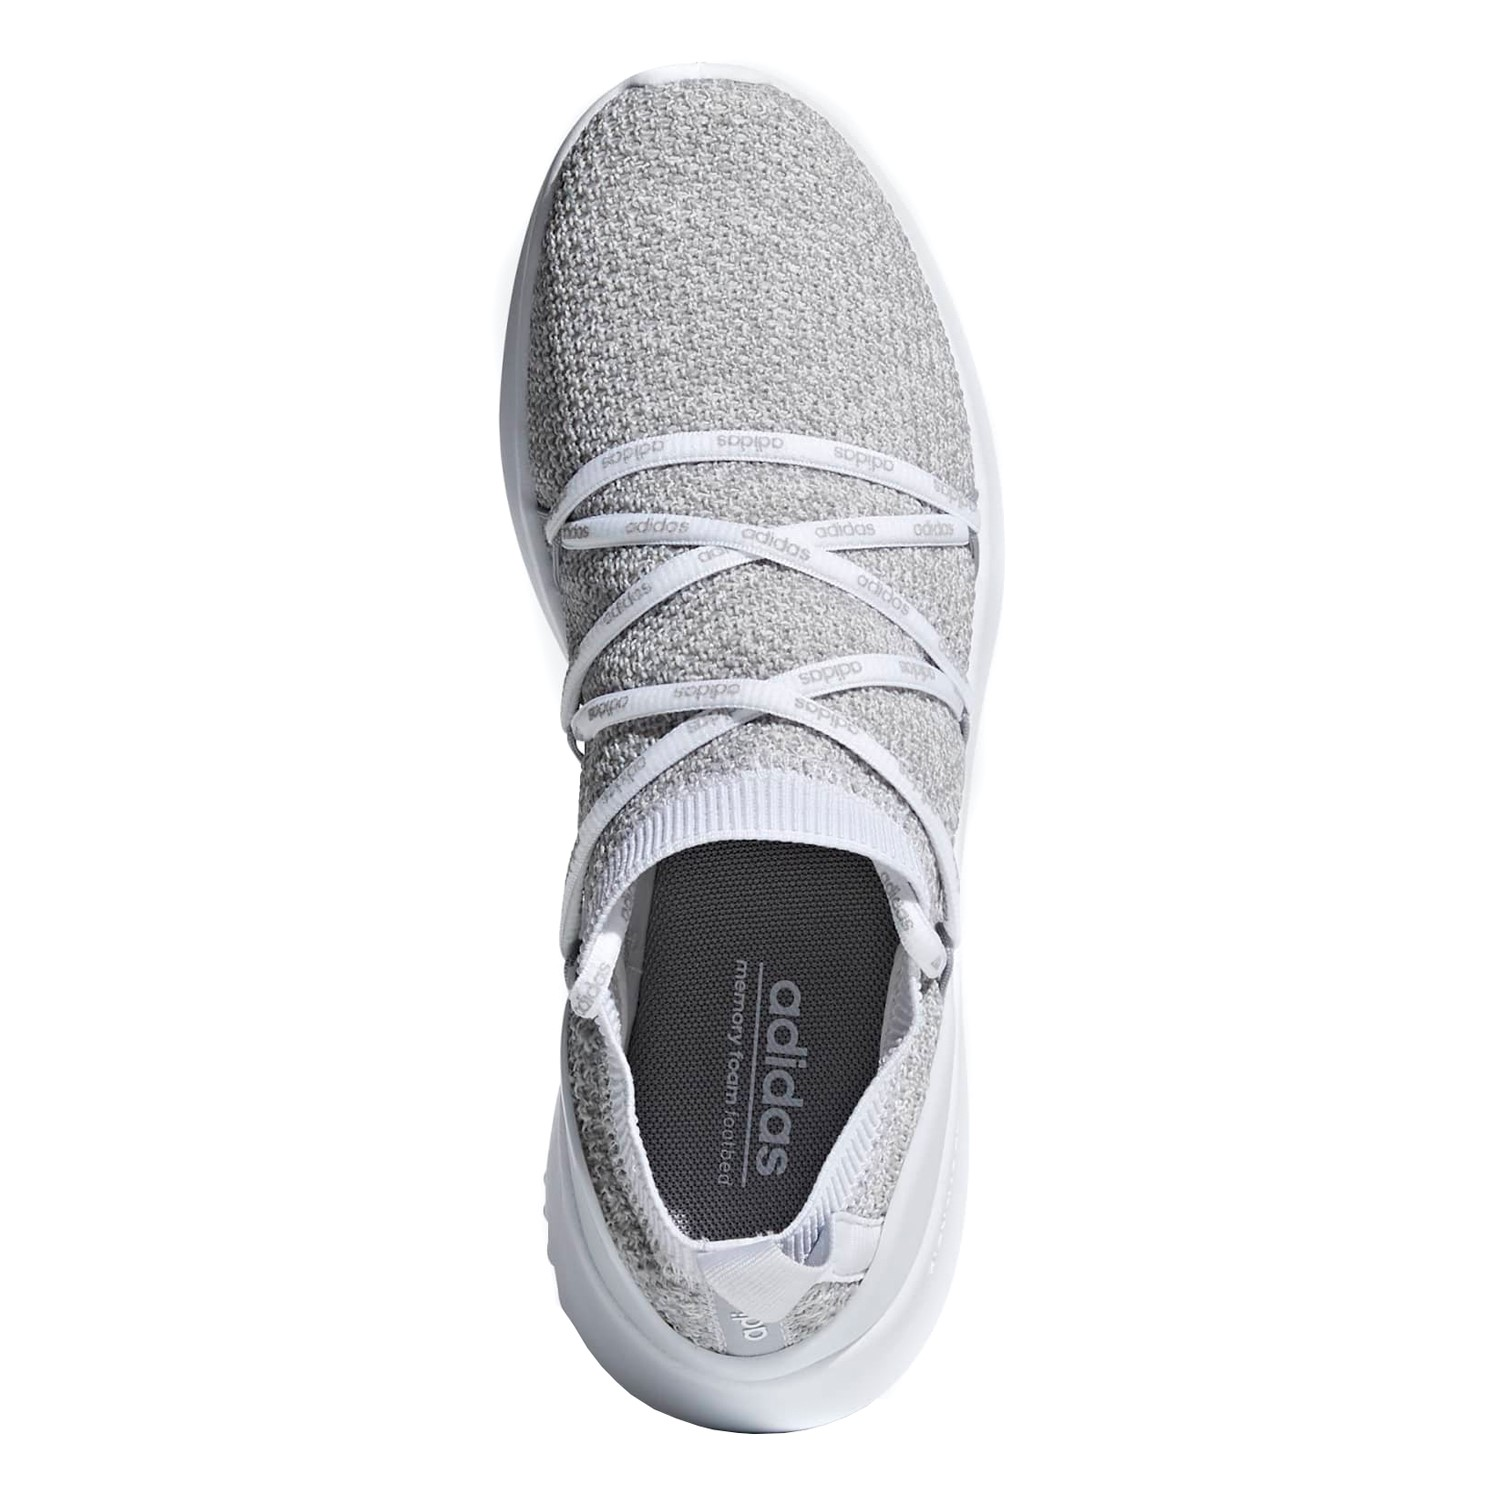 71986c4365a4a3 Adidas Ultimamotion - Womens Casual Shoes - Footwear White Grey ...